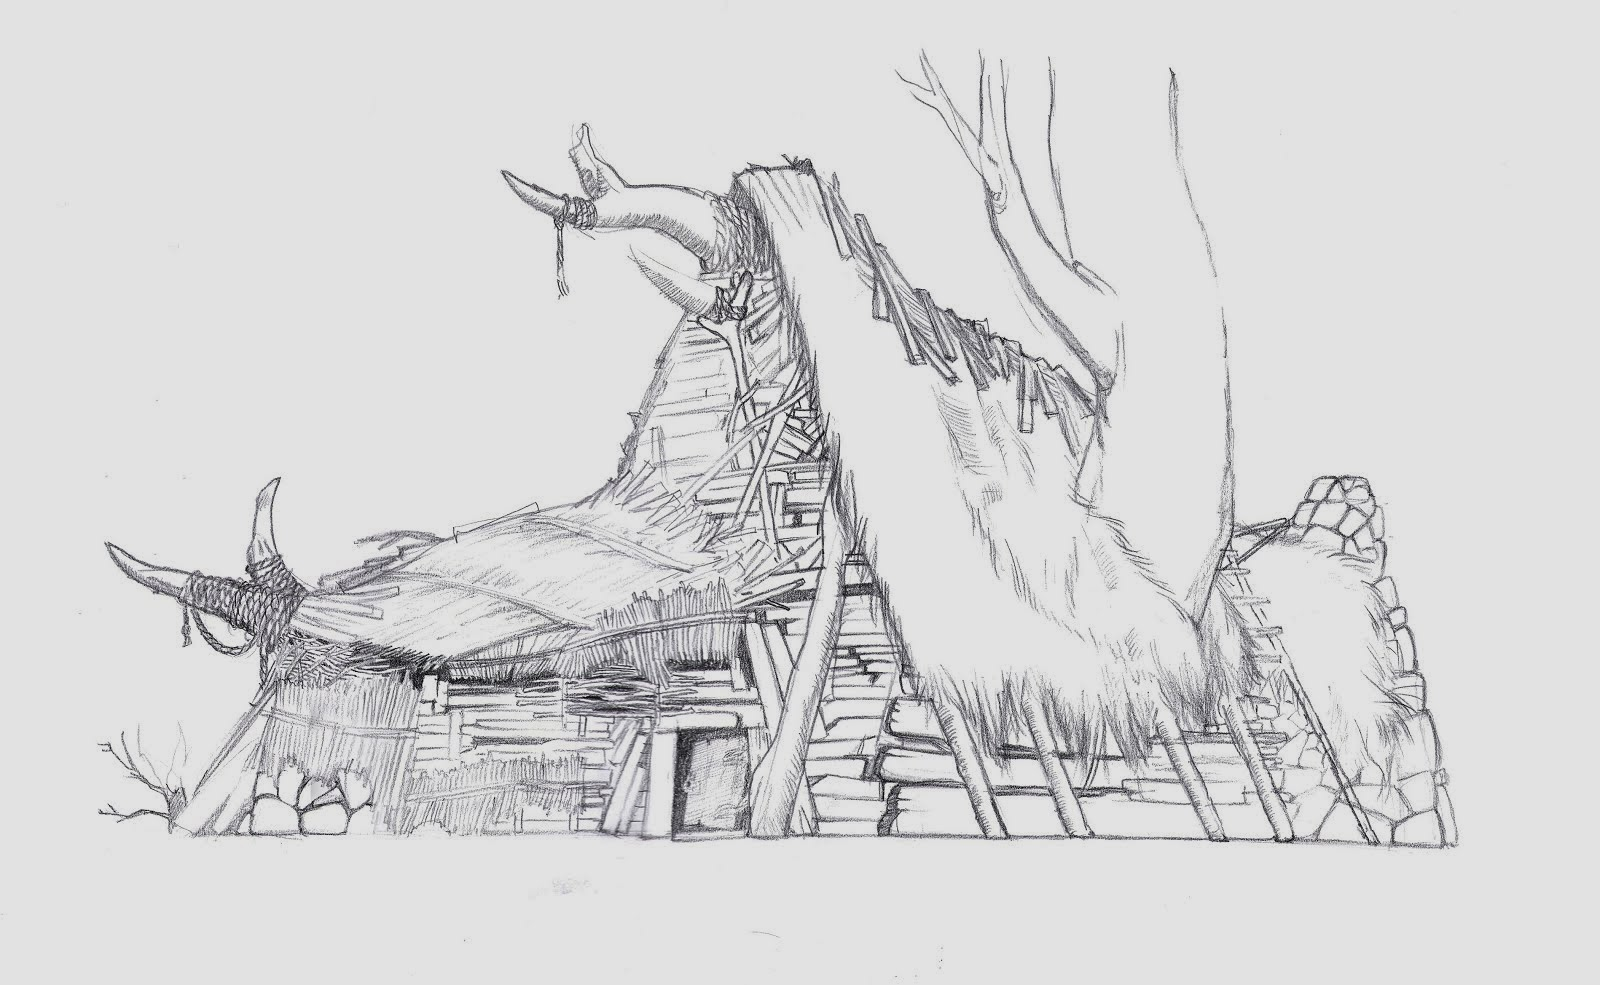 Barbarian House Design II, Conan The Barbarian, 2011